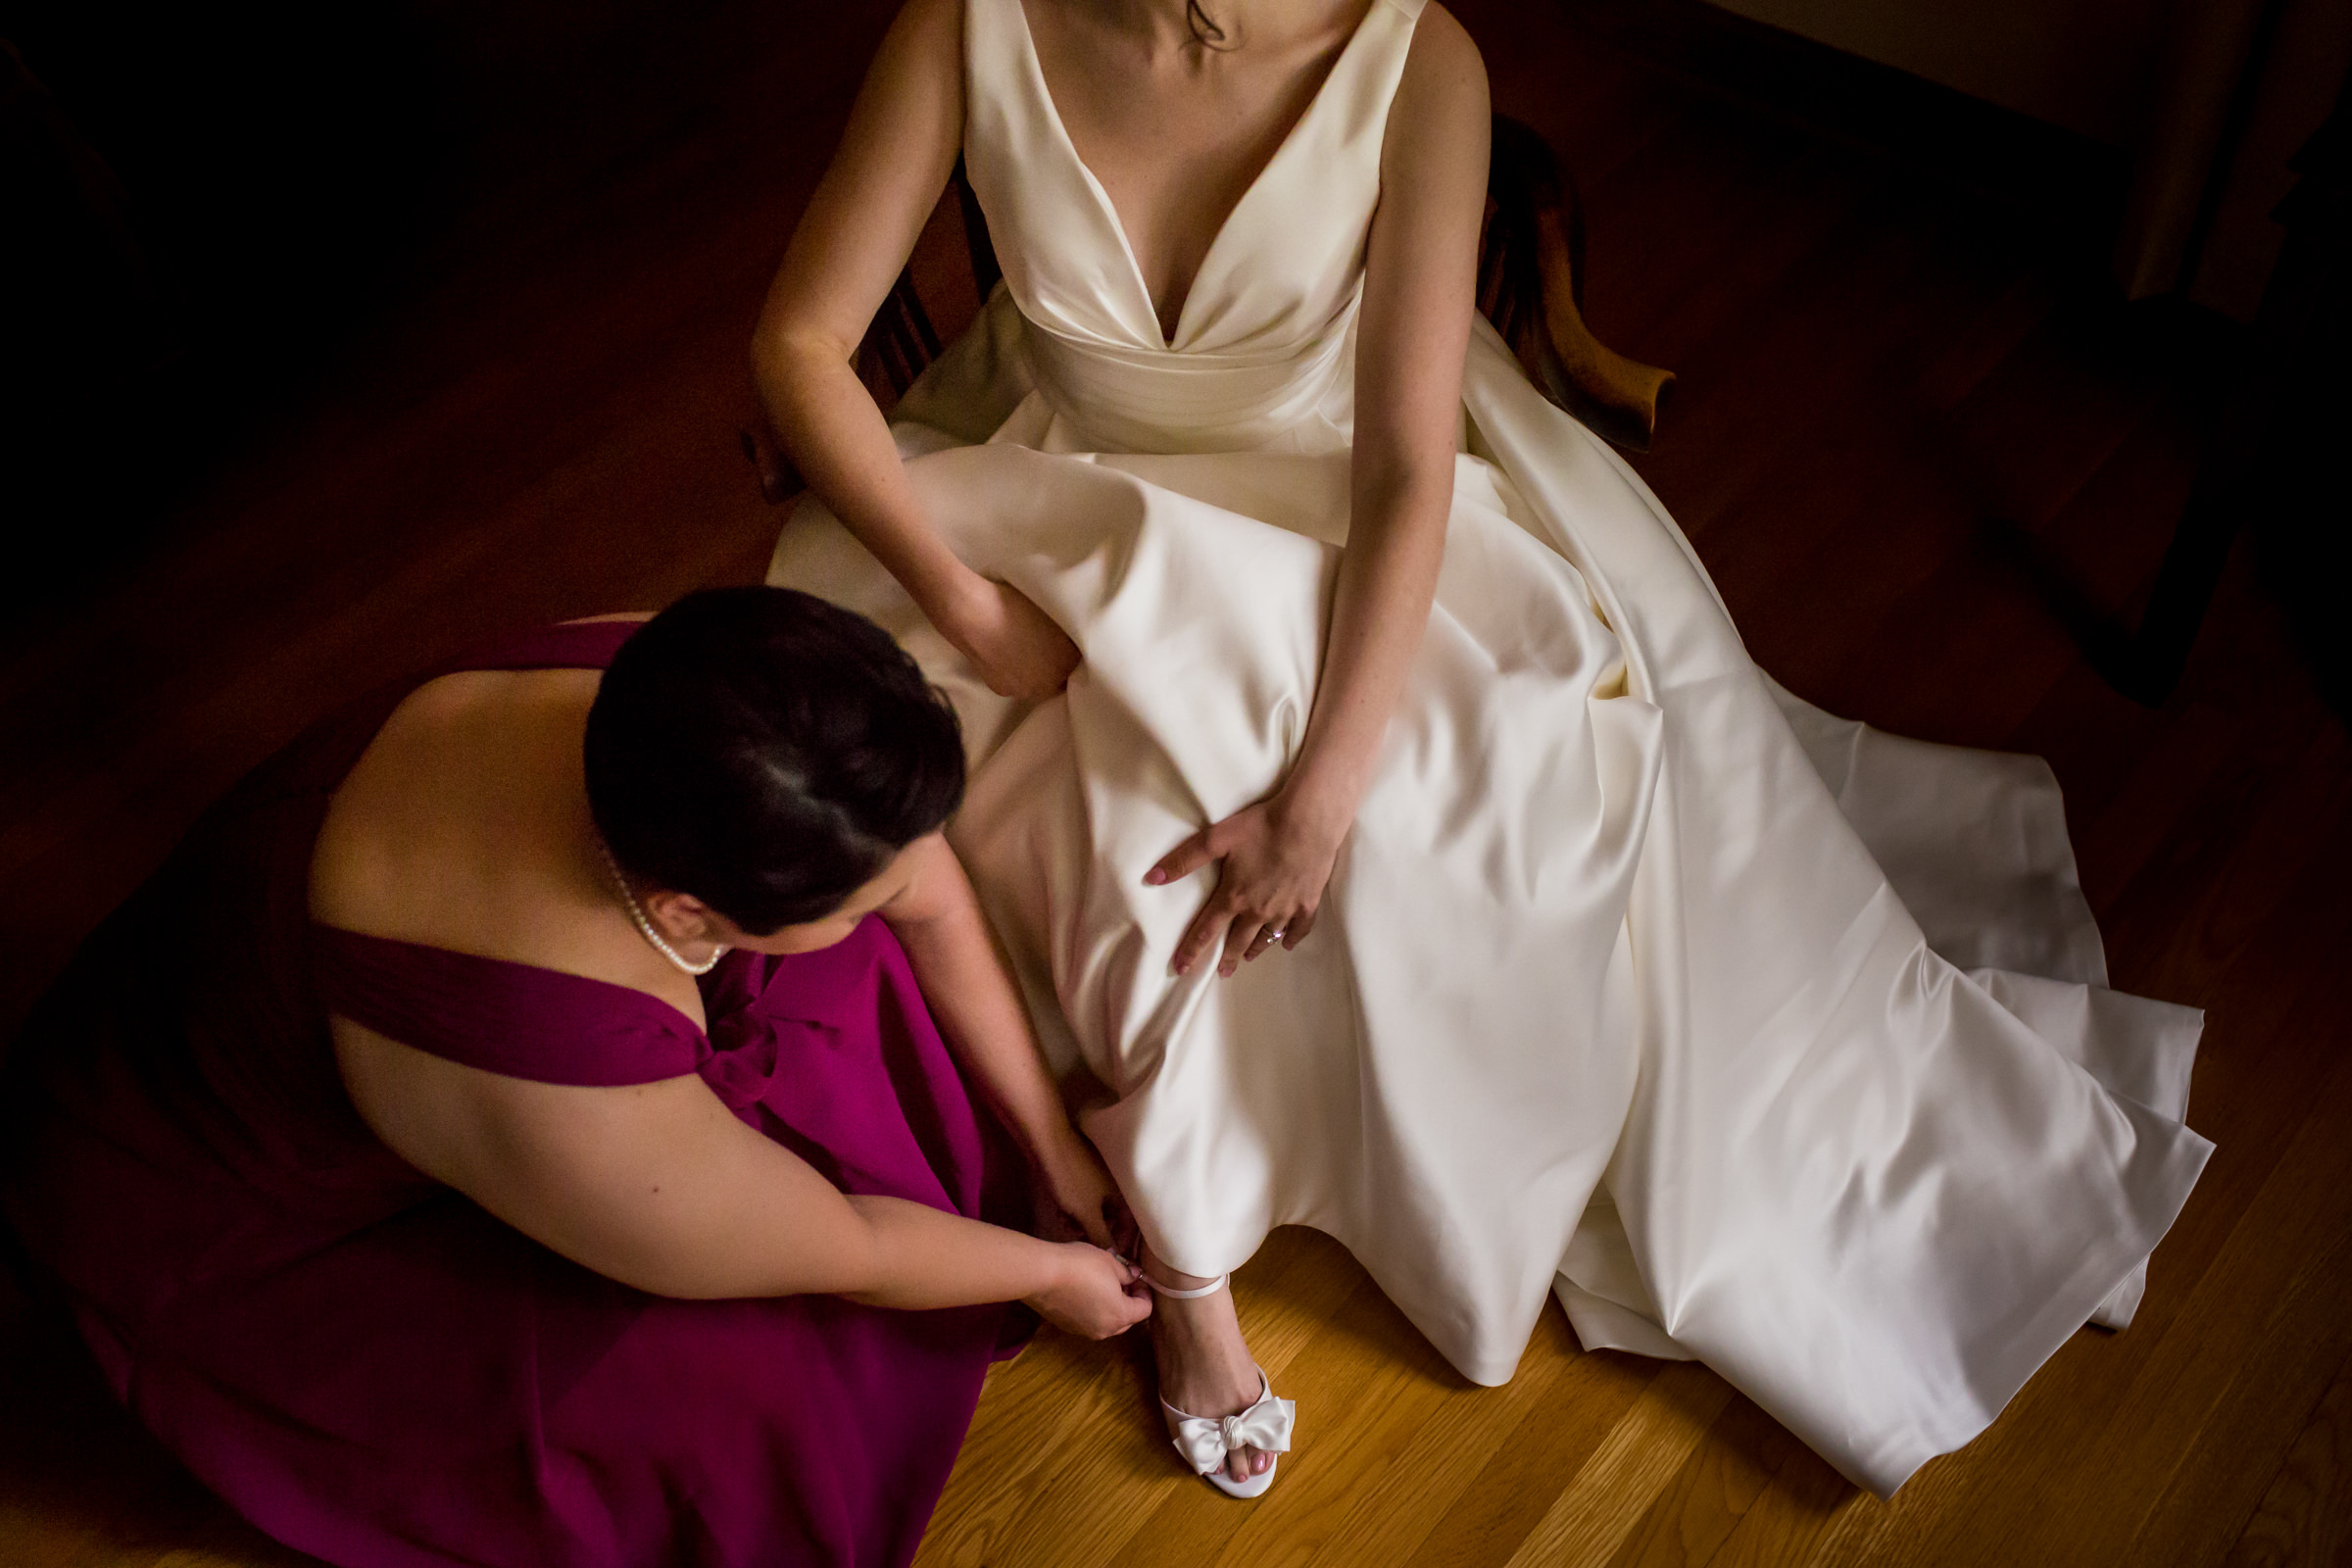 Assisting the bride with her shoes - photo by Procopio Photography